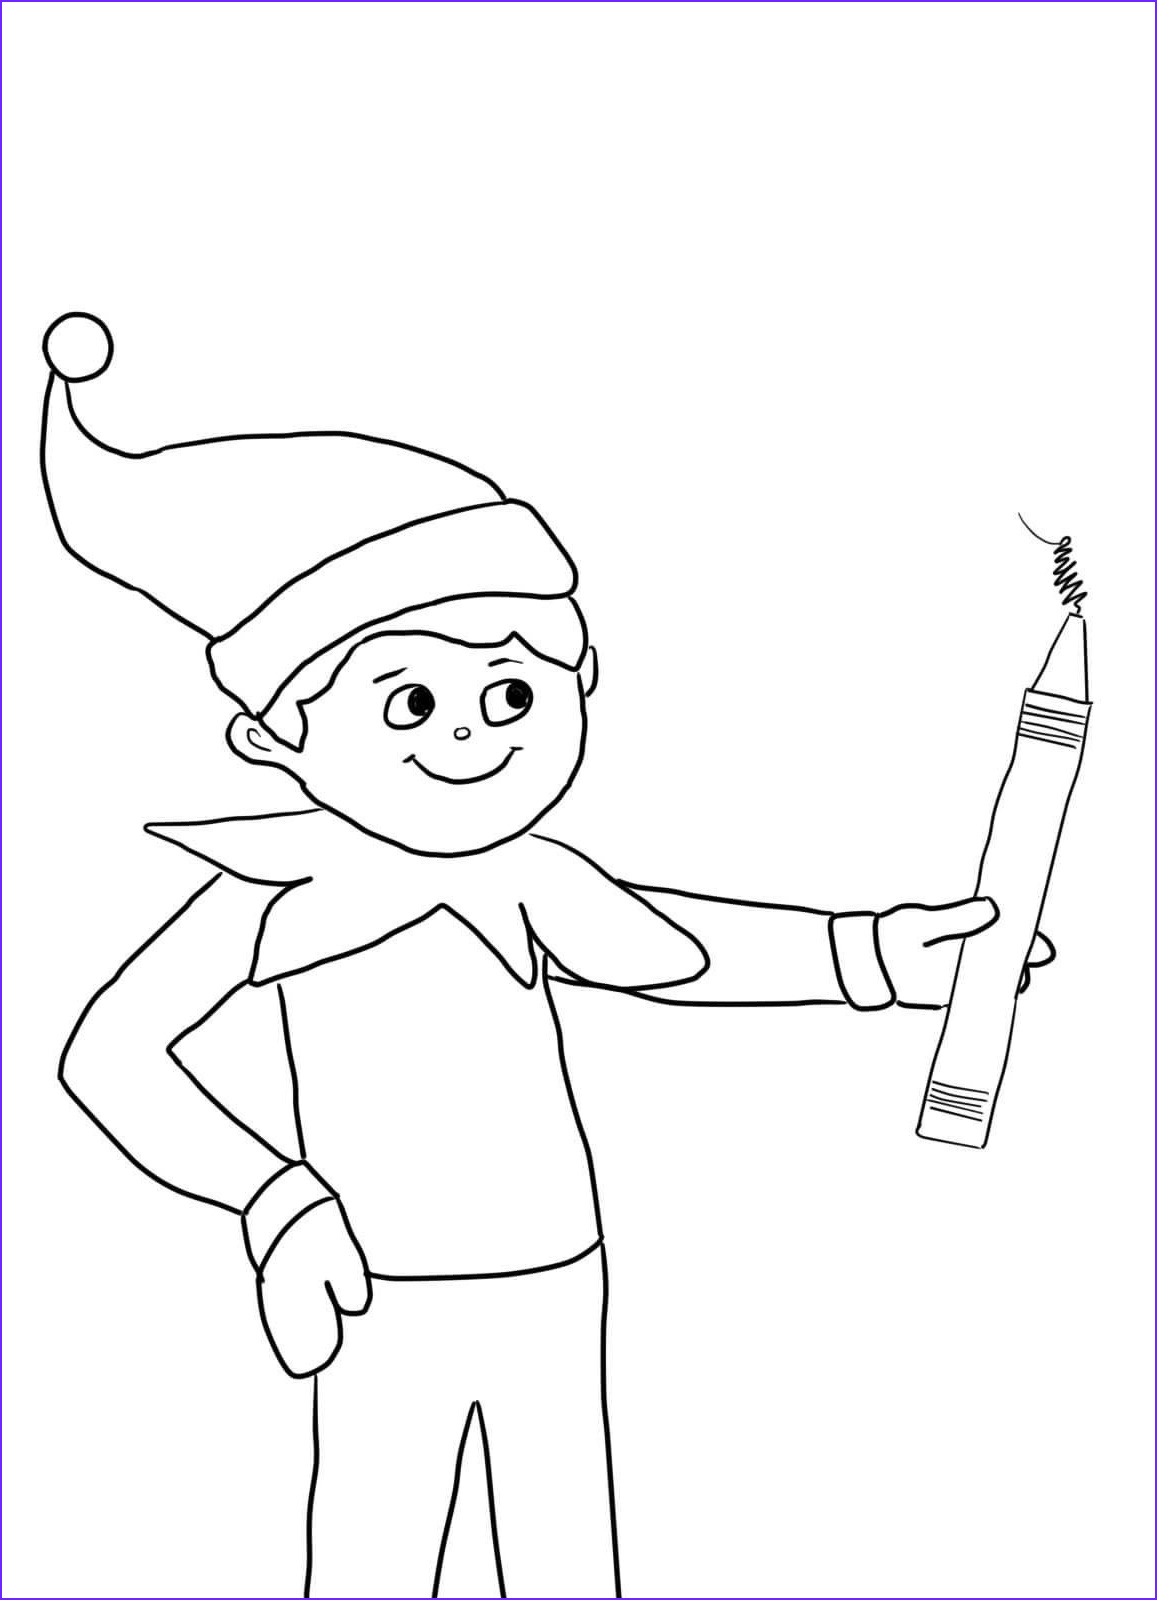 Elf Coloring Luxury Photography Elf A Shelf Coloring Pages Coloring Home